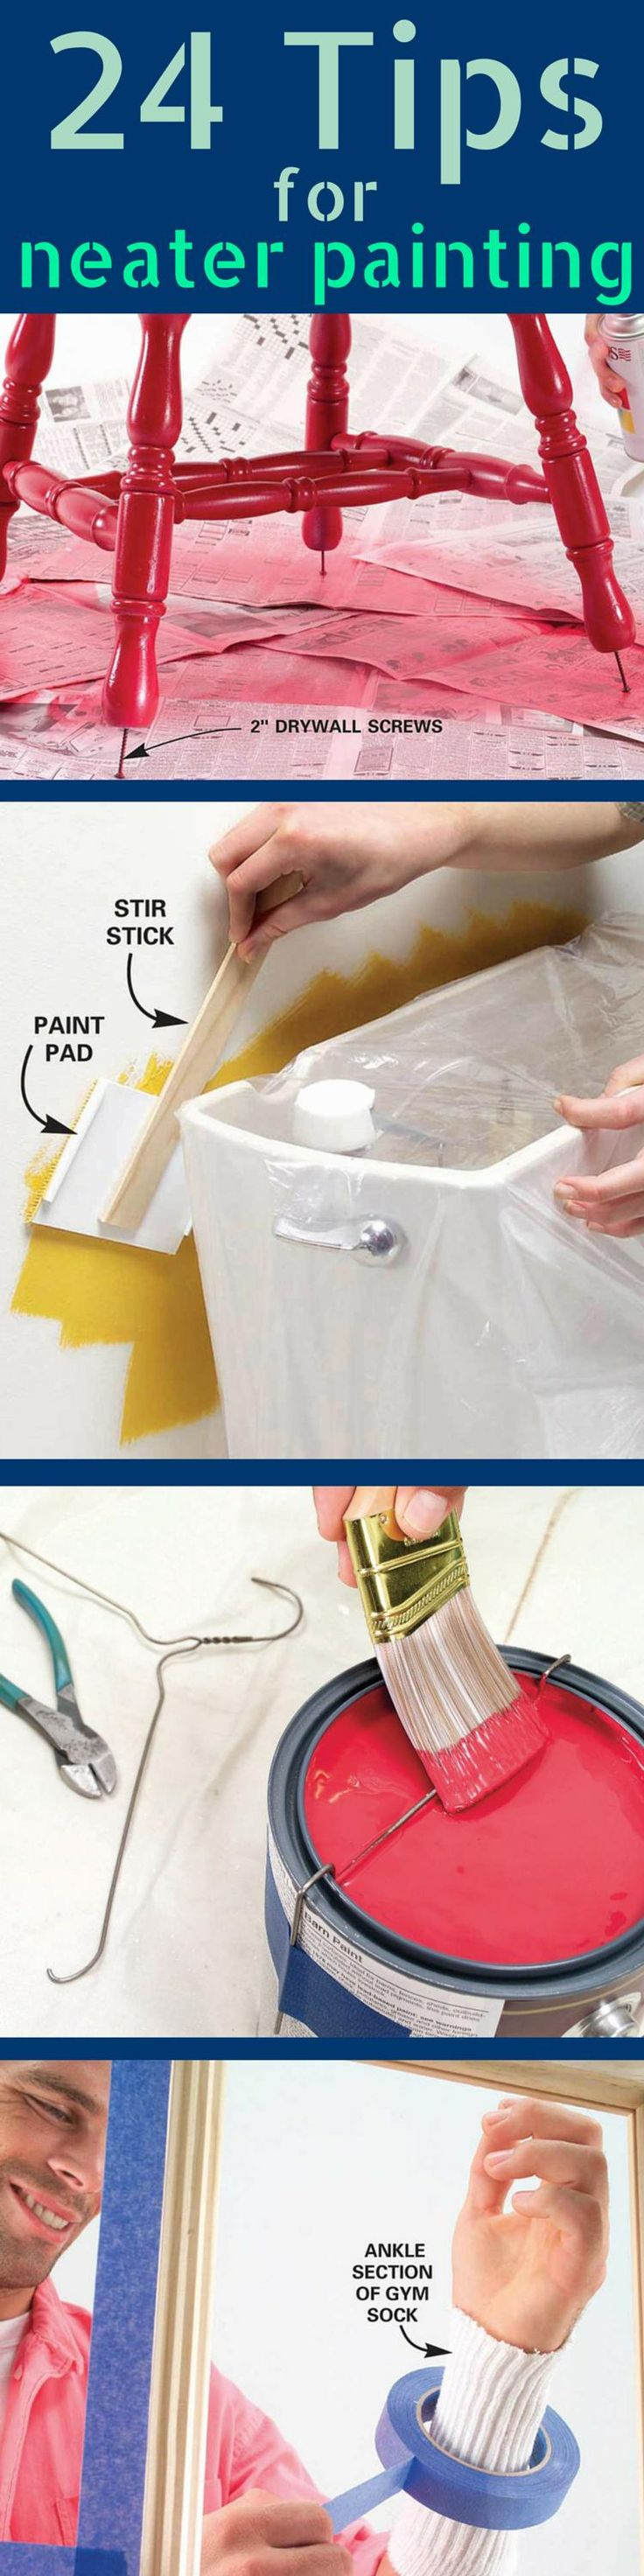 Choosing the paint colour for any direction room angela bunt - Paint A Room Without Making A Mess